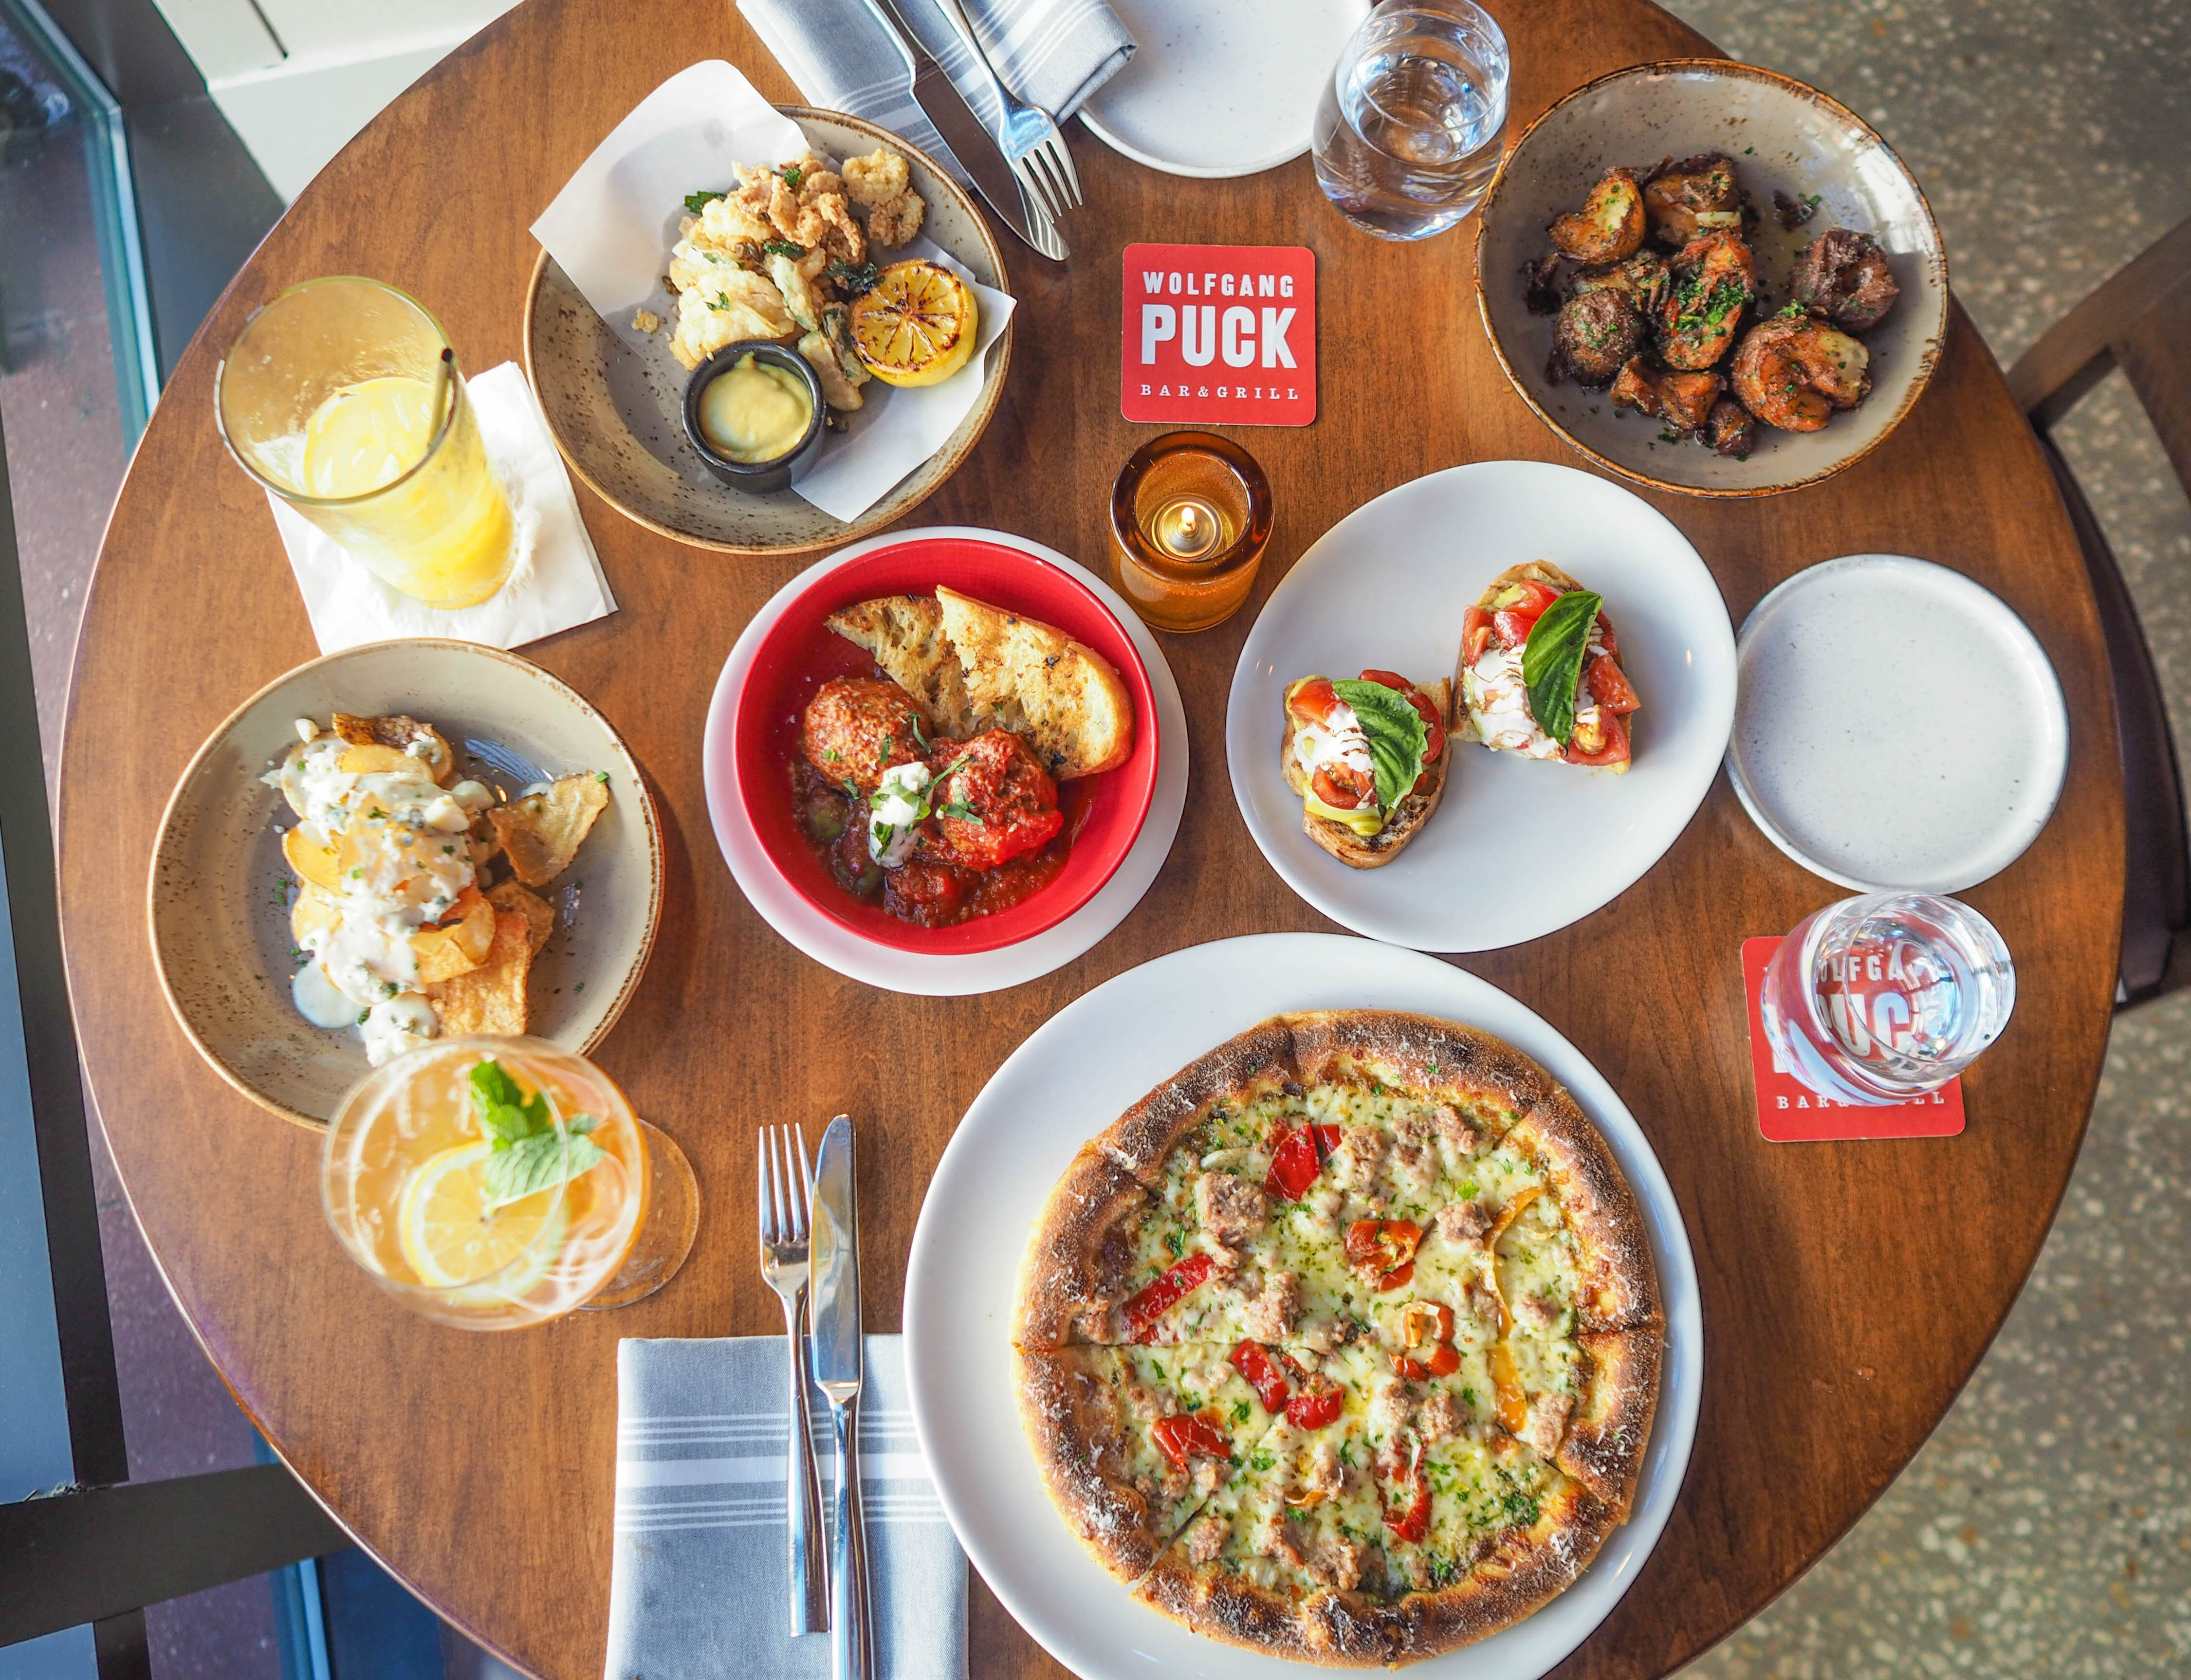 First Look: New Happy Hour Menu at Wolfgang Puck Bar & Grill